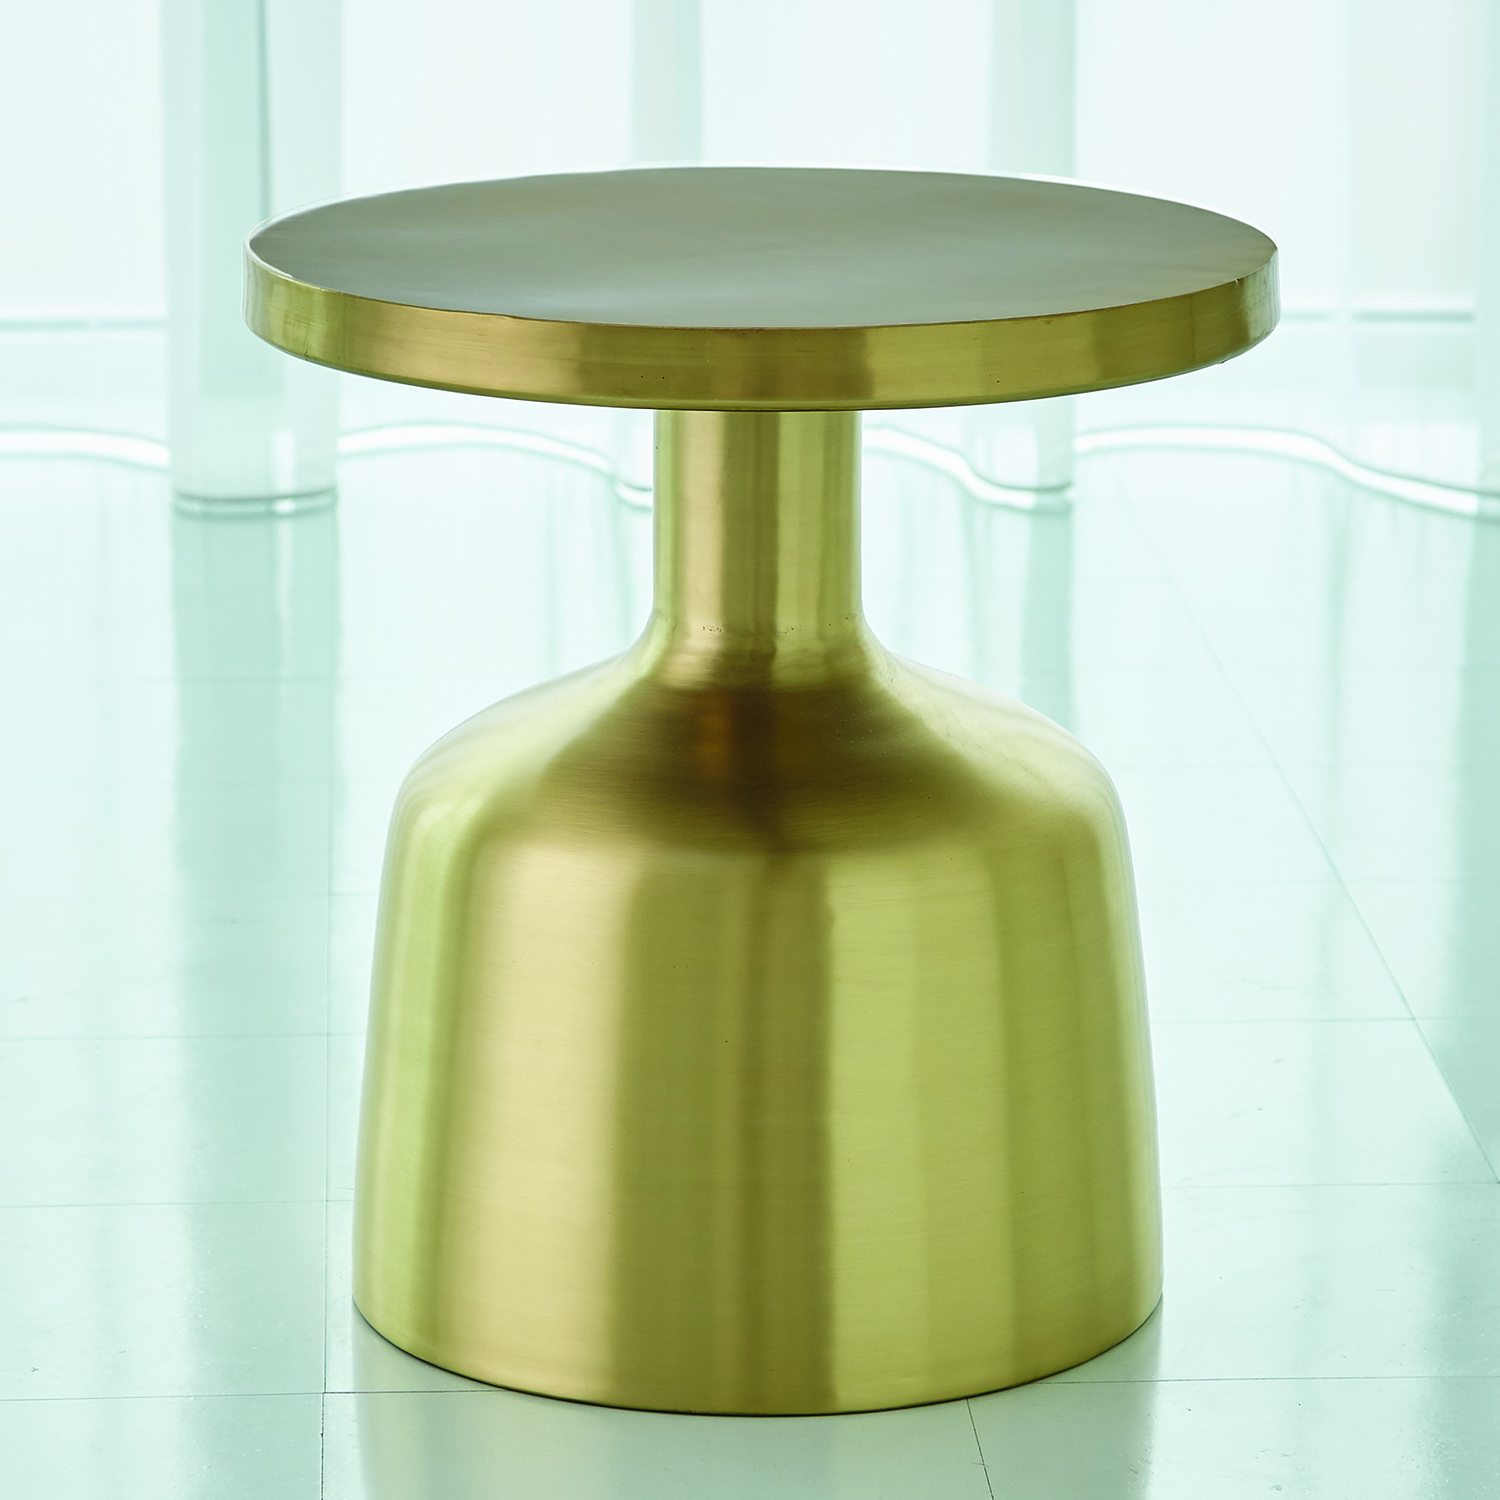 global views studio neutra satin brass accent table bellacor green metal hover zoom marble steel coffee hobby lobby craft clear and gold piece chair set wood bedside dark console